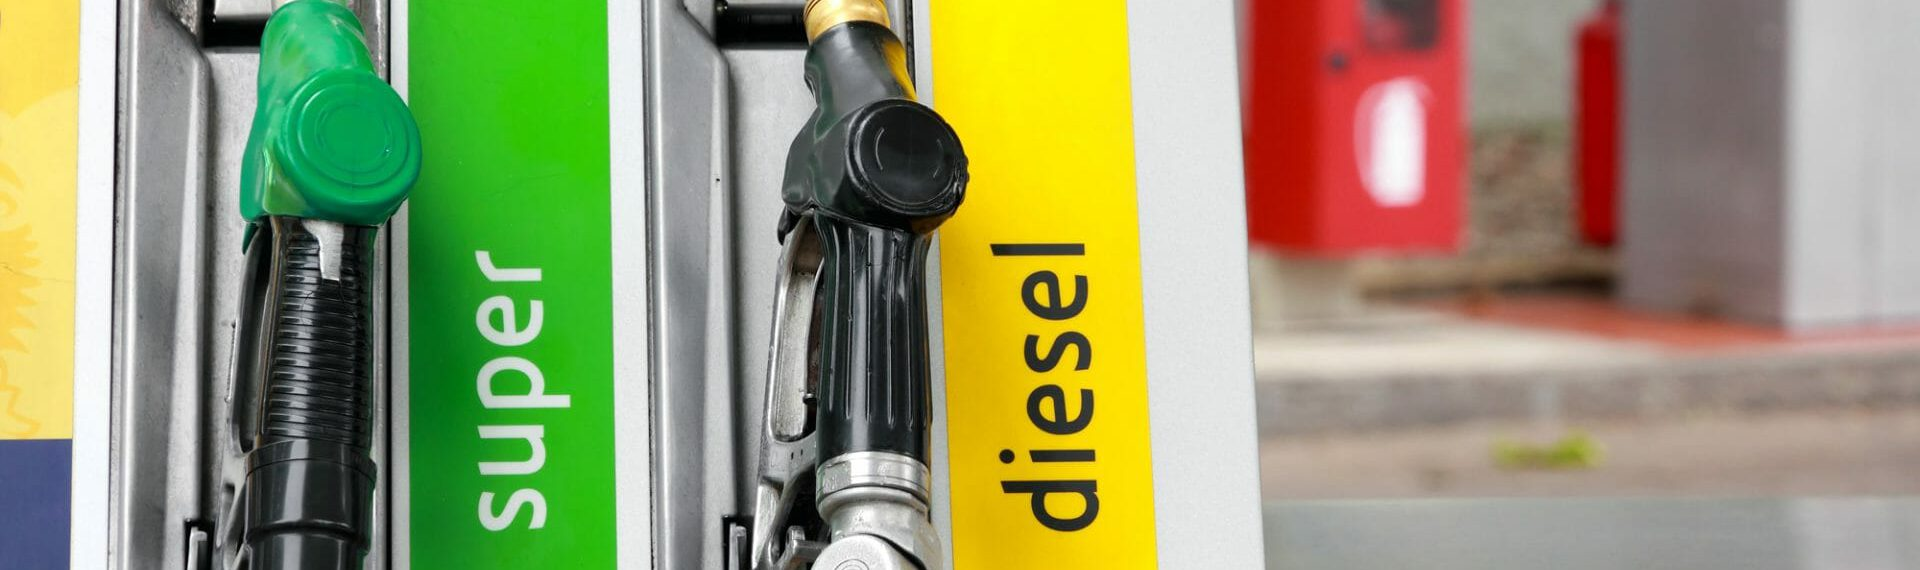 Fuel On The Increase: Fuel Prices Set To Rise Even Higher Over The Next Year